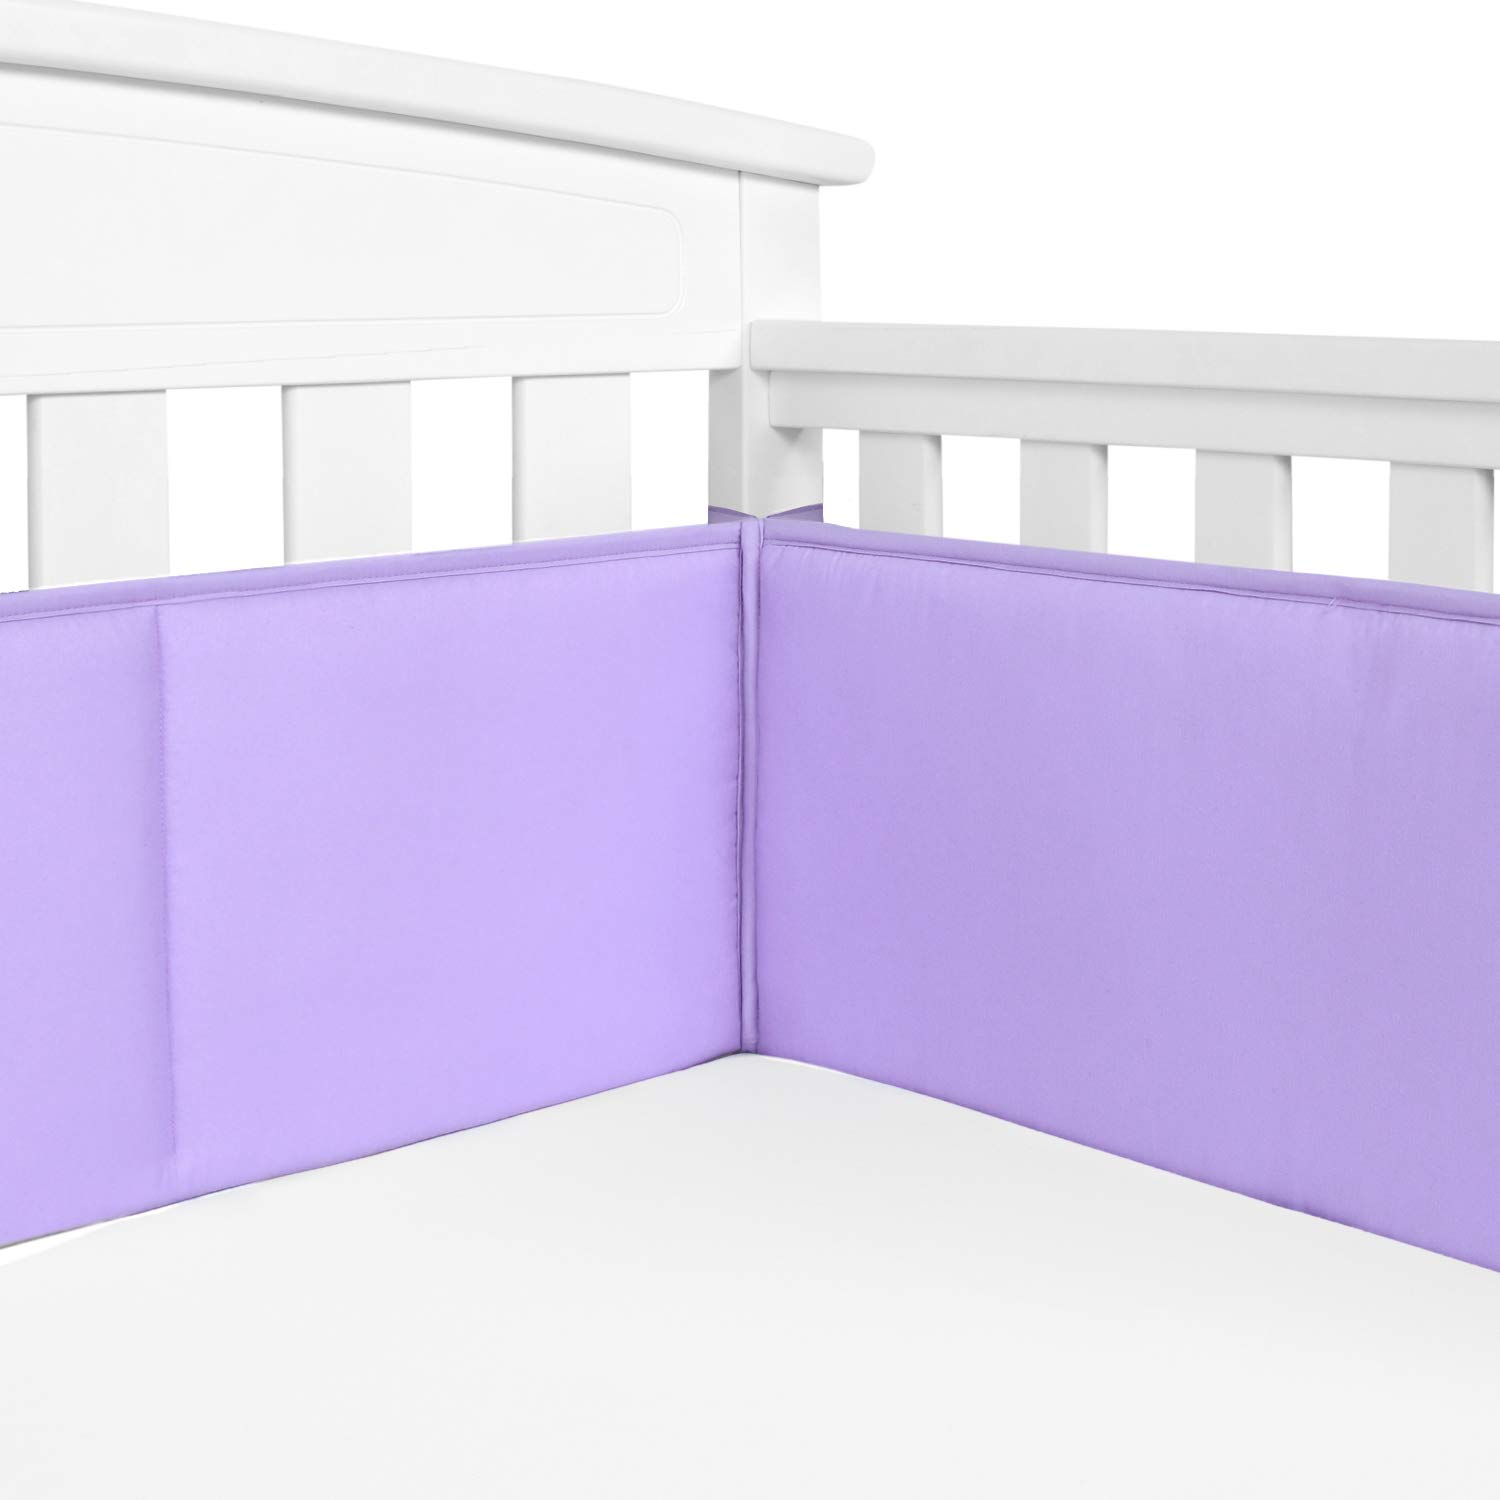 TILLYOU Baby Safe Crib Bumper Pads for Standard Cribs Machine Washable Padded Crib Liner Thick Padding for Nursery Bed 100% Silky Soft Microfiber Polyester Protector de Cuna, 4 Piece/Lavender